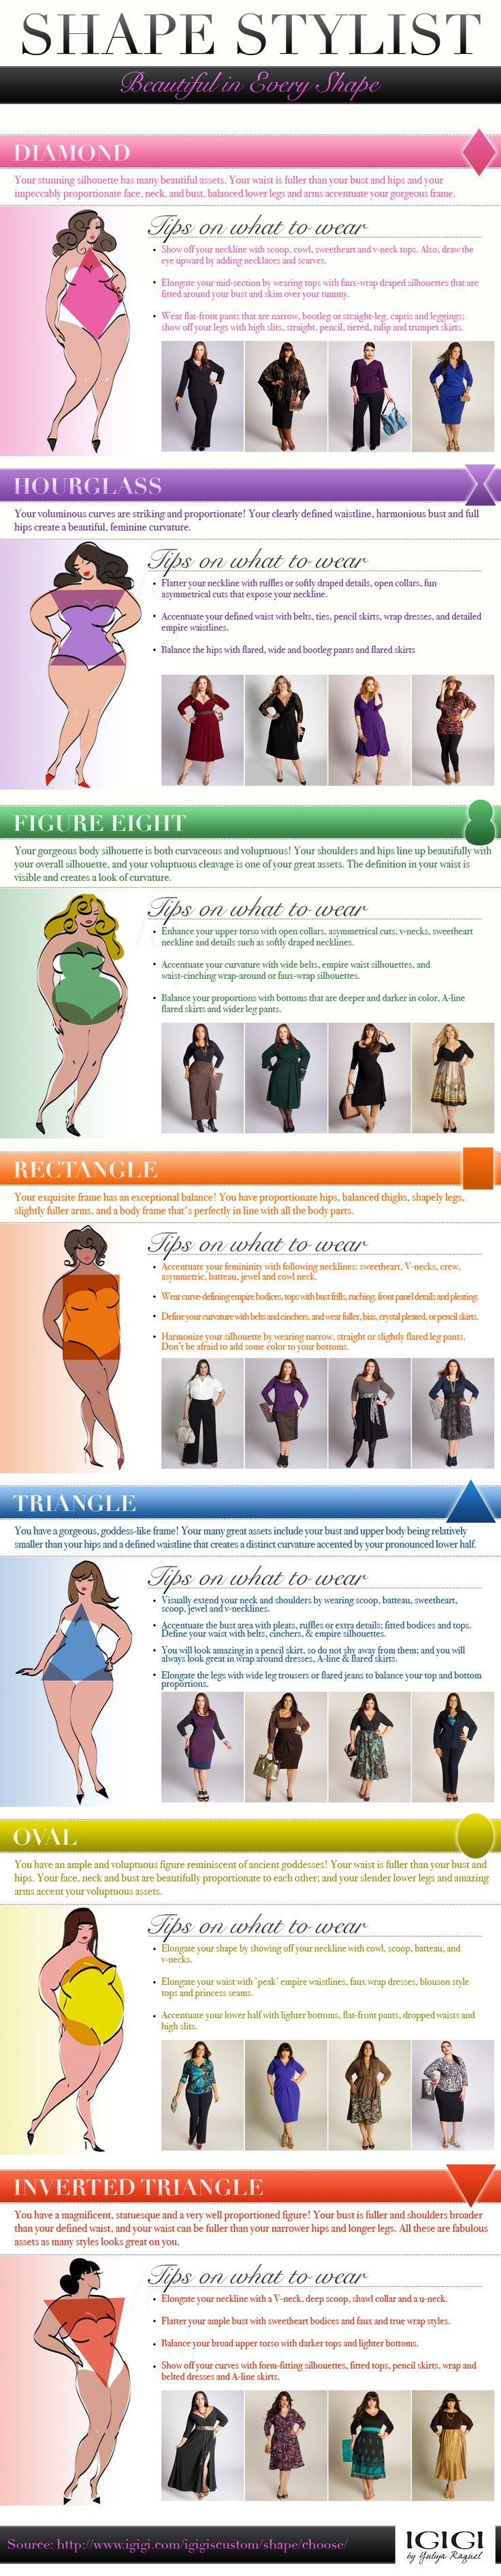 Fashion And Beauty Tips: Plus Size Fashion: Dress for your